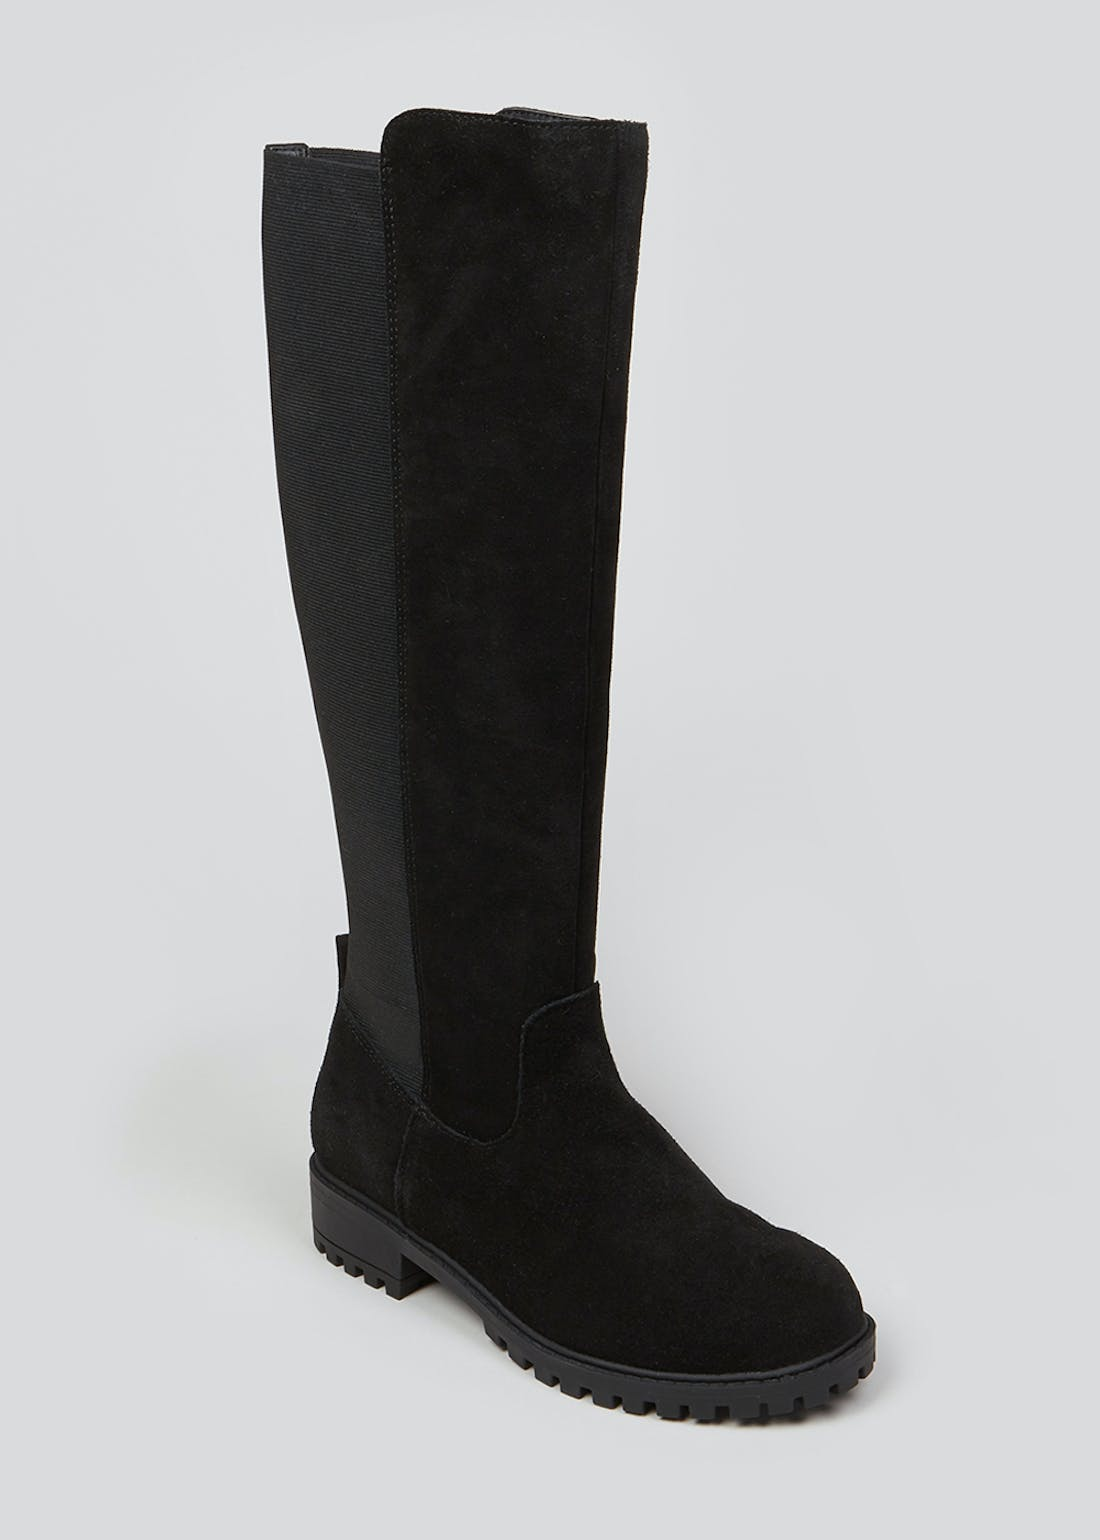 Soleflex Black Real Suede Boots